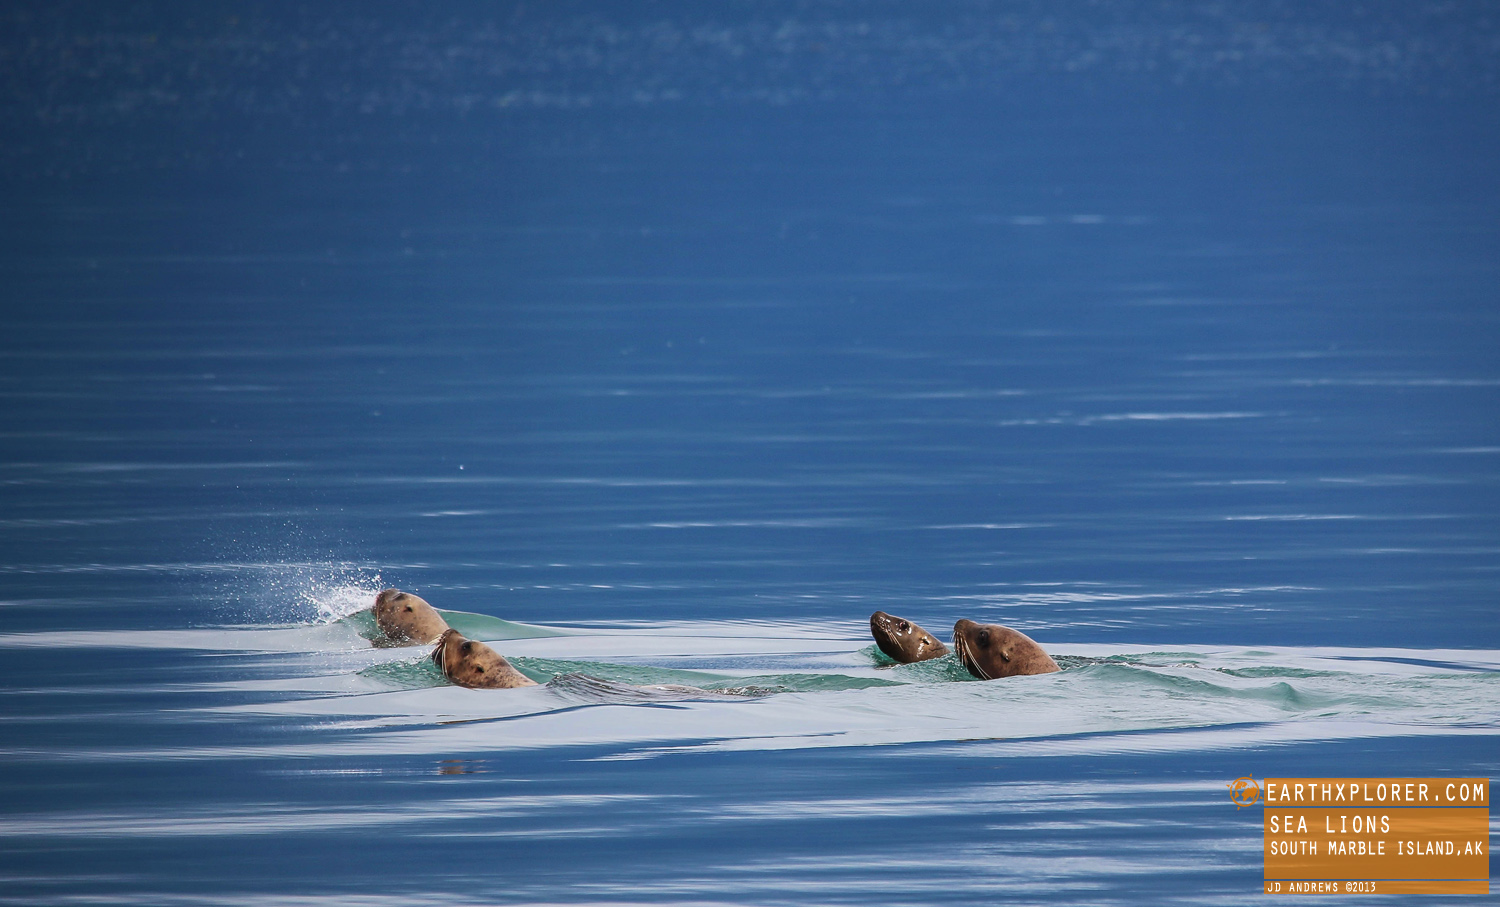 Sea Lions are able to dive down to 1148ft (350 meters) & can stay underwater for five minutes.